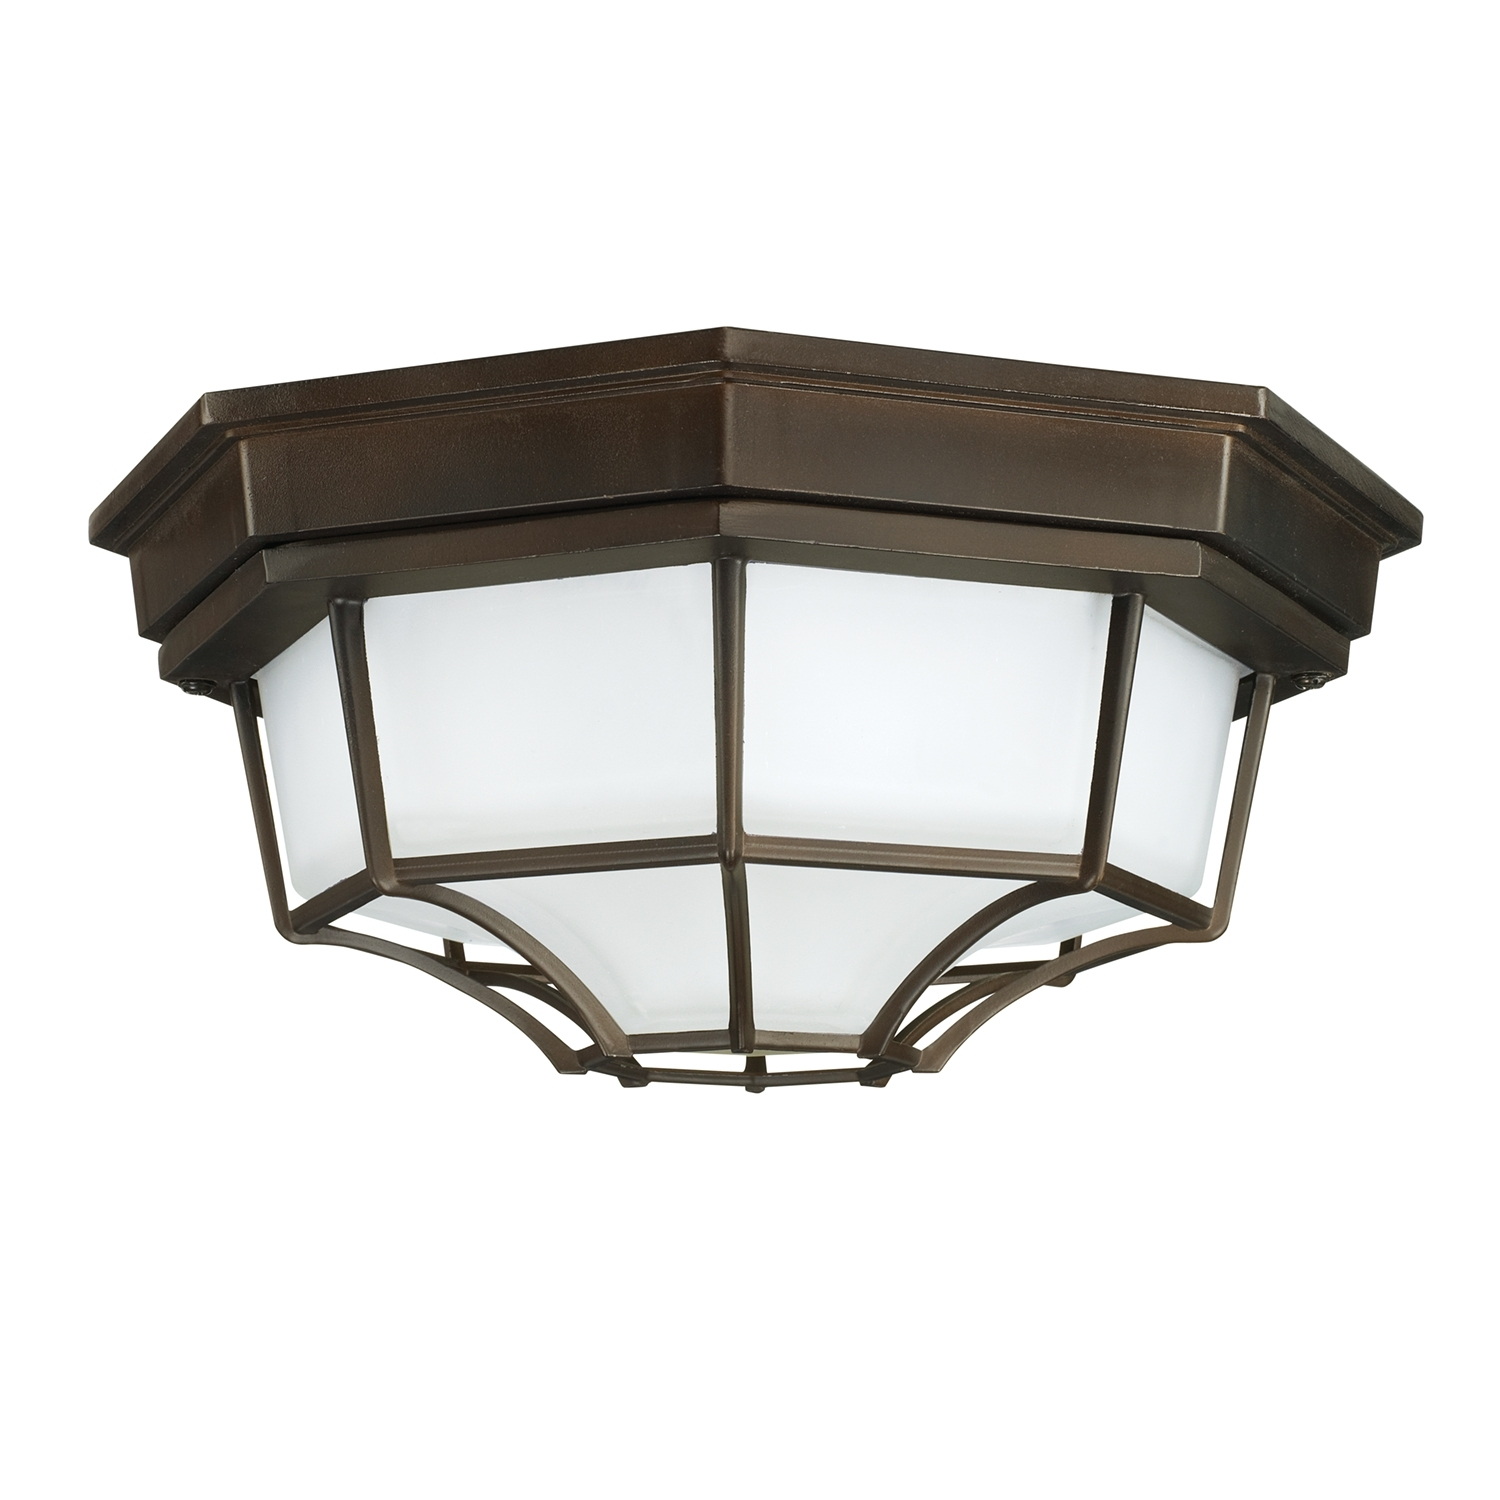 Outdoor Ceiling Lighting | Capital Lighting Intended For Decorative Outdoor Ceiling Lights (#13 of 15)